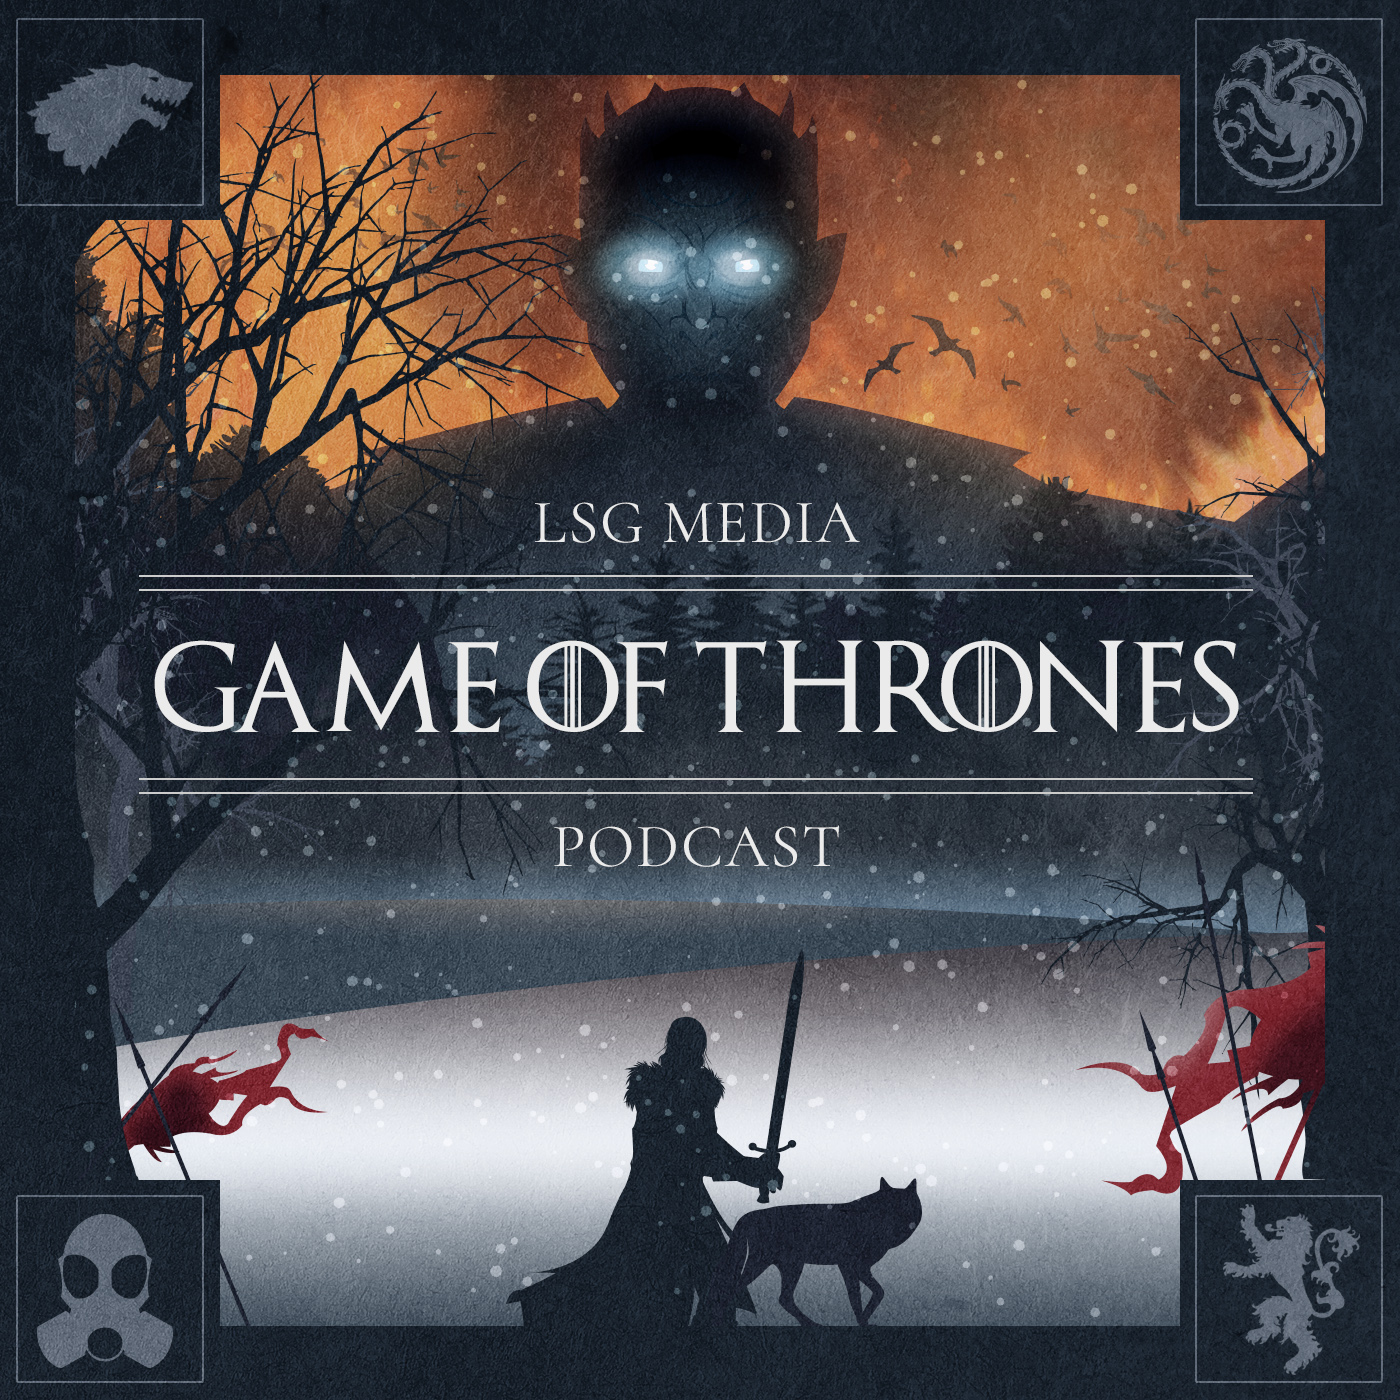 Artwork for podcast Game of Thrones Podcast